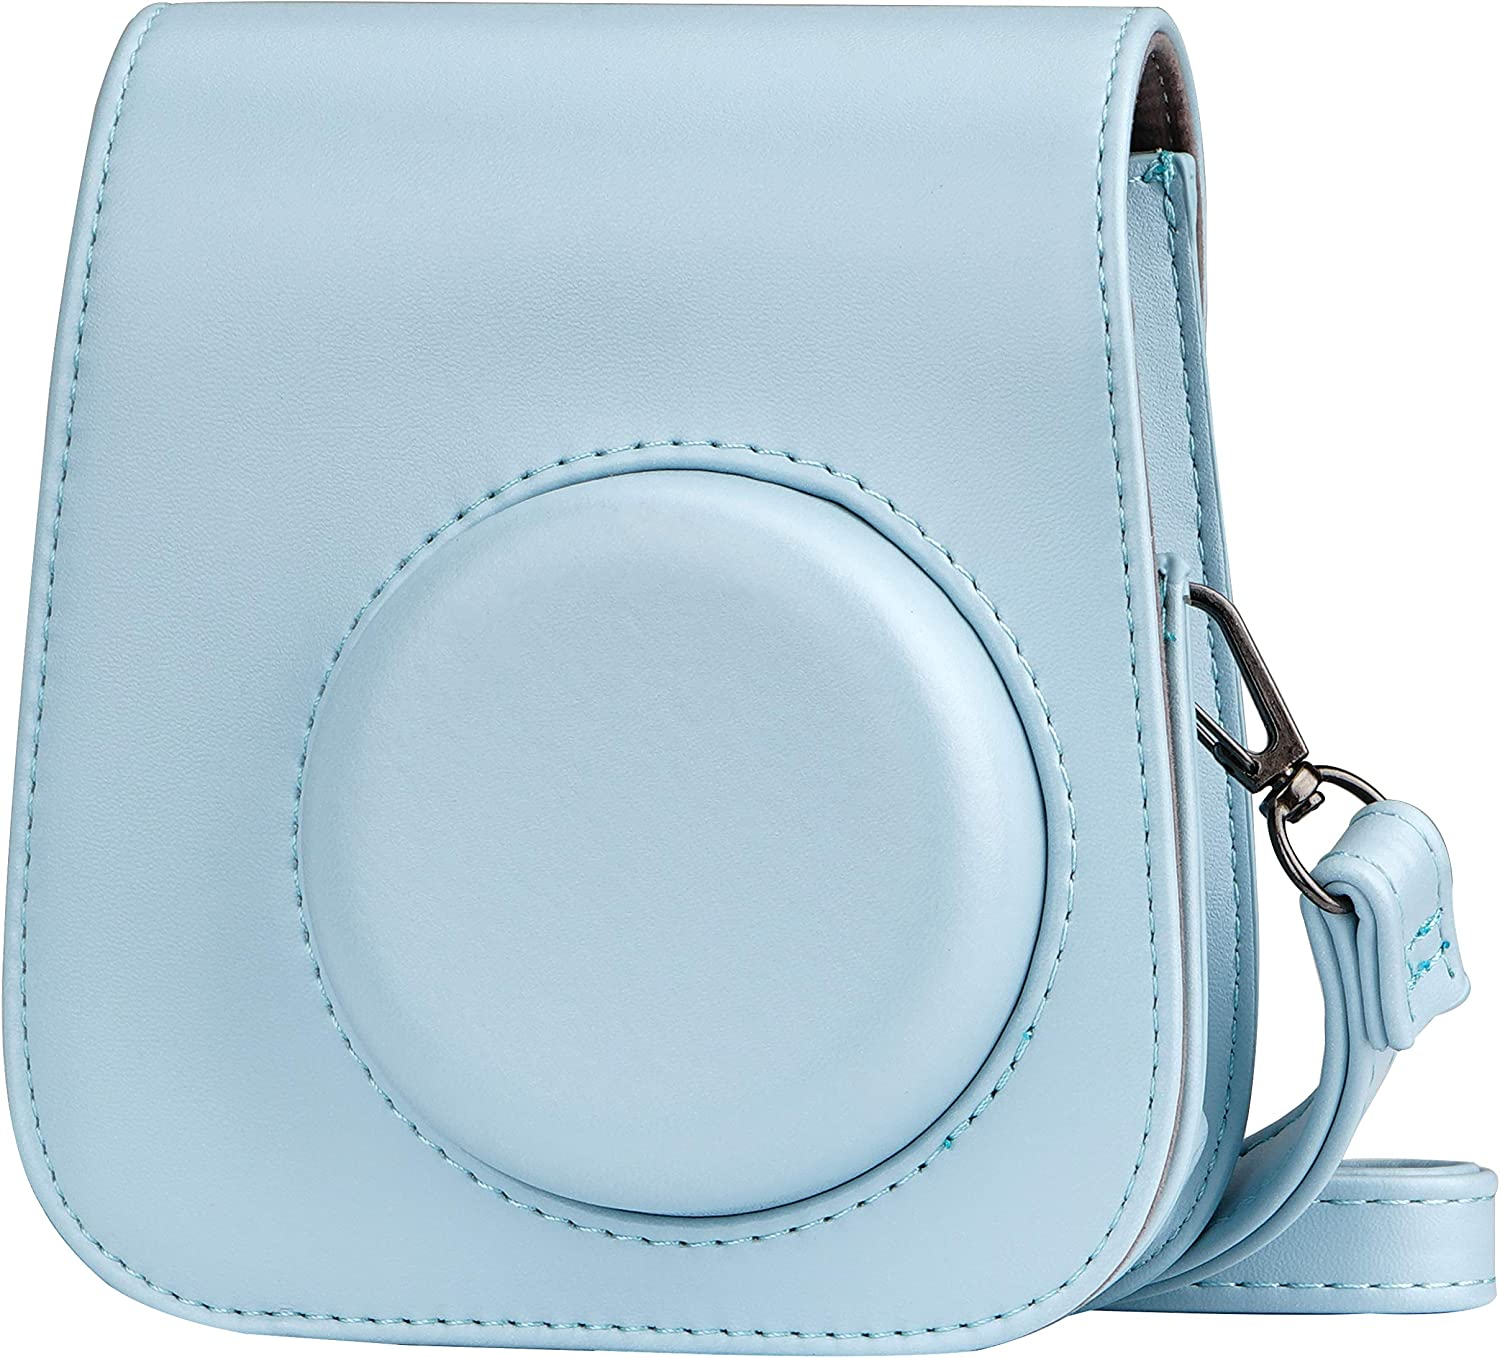 Blummy PU Leather Camera Case for Fujifilm Instax Mini 11 Instant Camera with Adjustable Strap and Pocket(Blue)